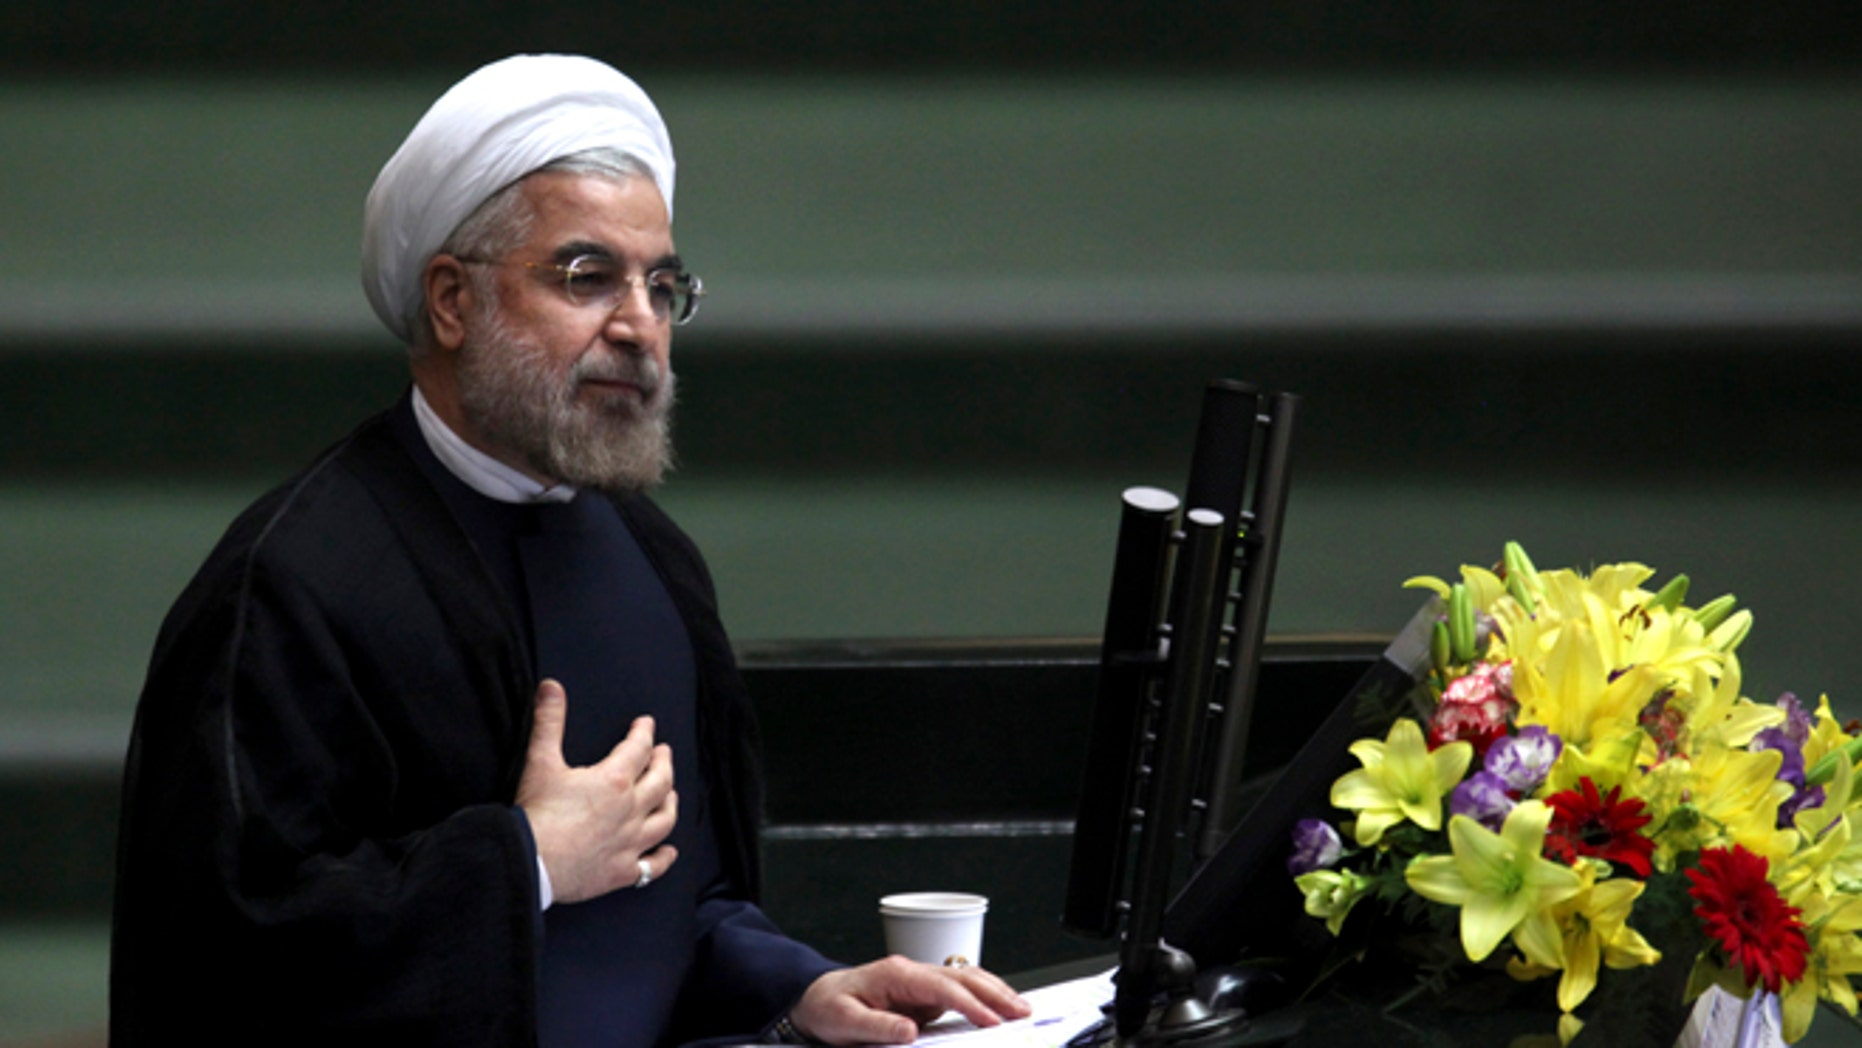 Iranian President Hasan Rouhani uses social media to communicate with the world, but his regime just banned WhatsApp. (Reuters)